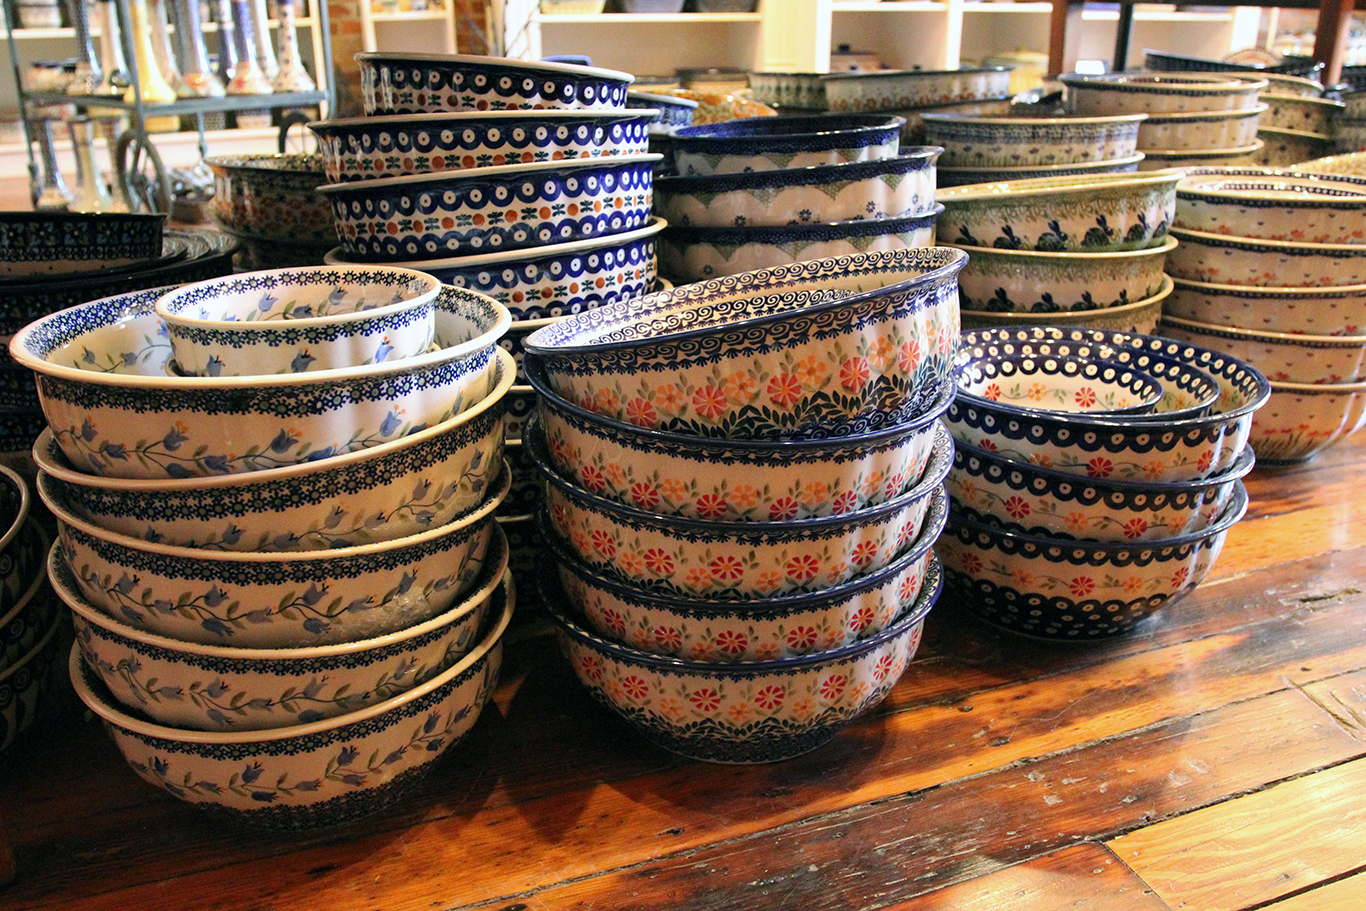 Polish Pottery Bowls at Renditions in Weston, MO